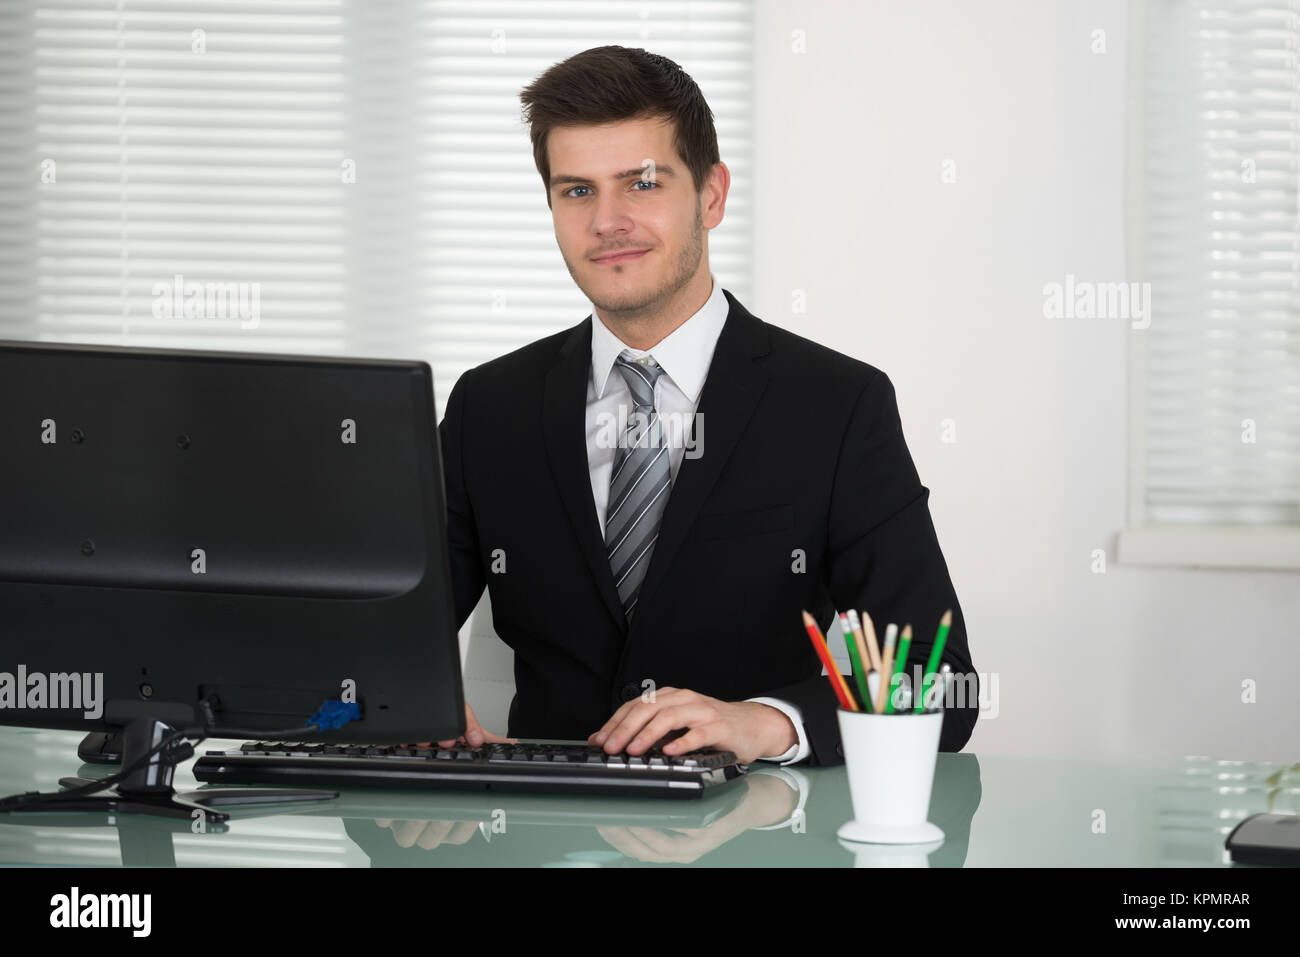 Businessman Working In Office - Stock Image